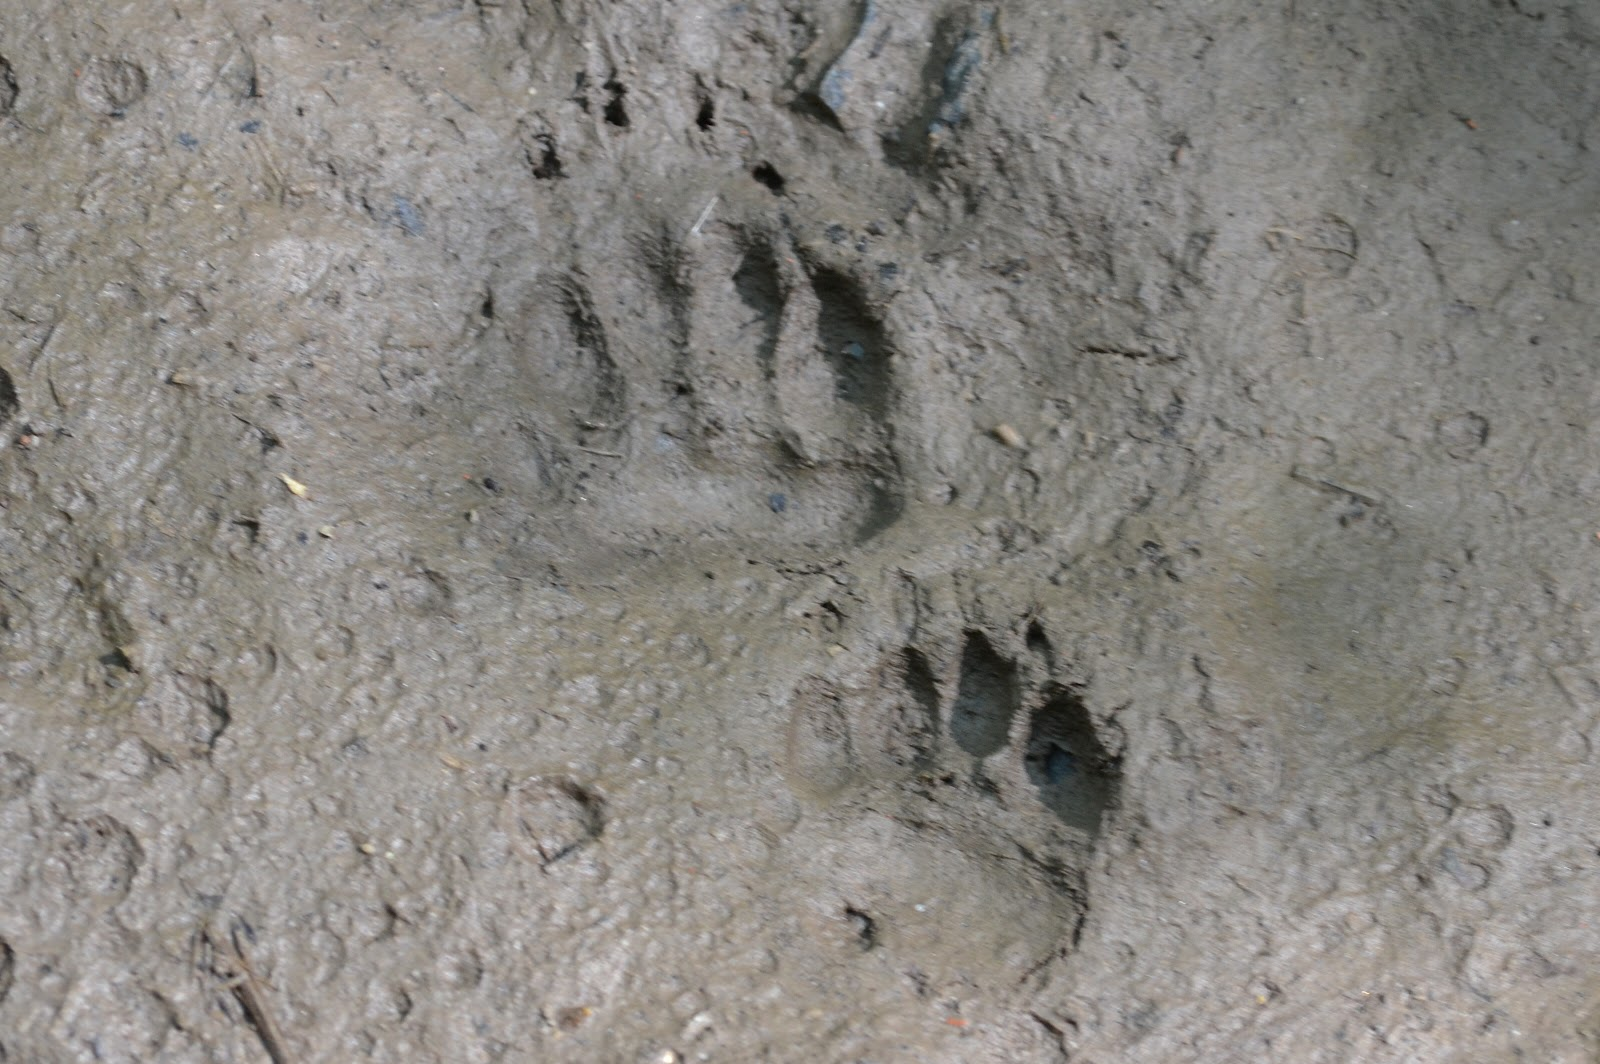 paw prints with claw marks in mud of eurasian badger meles meles photo ...: tracksandsigns.blogspot.com/2012/08/badger-tracks.html